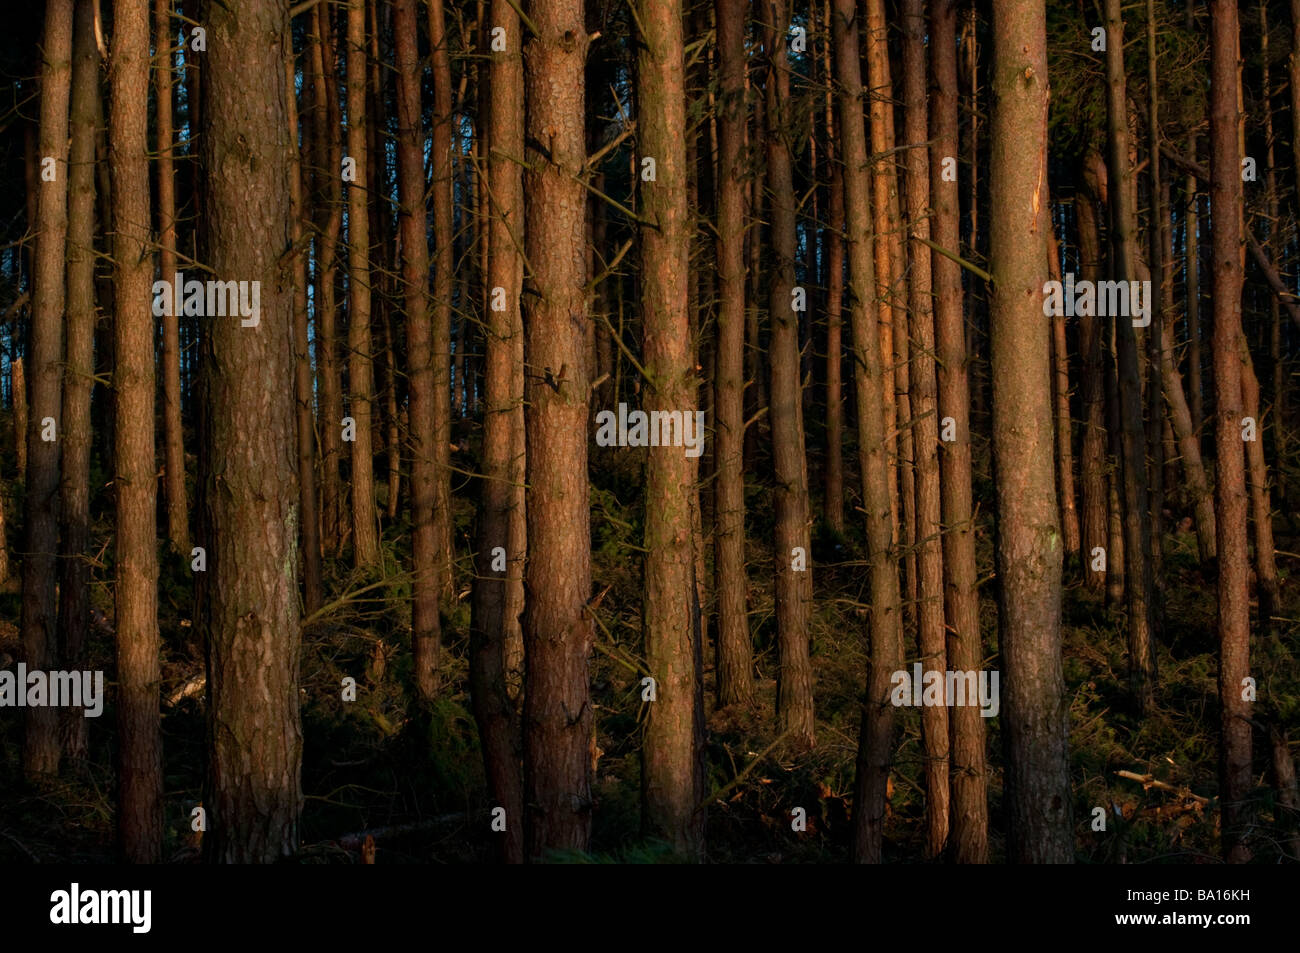 Forestry plantation at Stainburn Forest in the Washburn Valley near Harrogate Yorkshire England - Stock Image